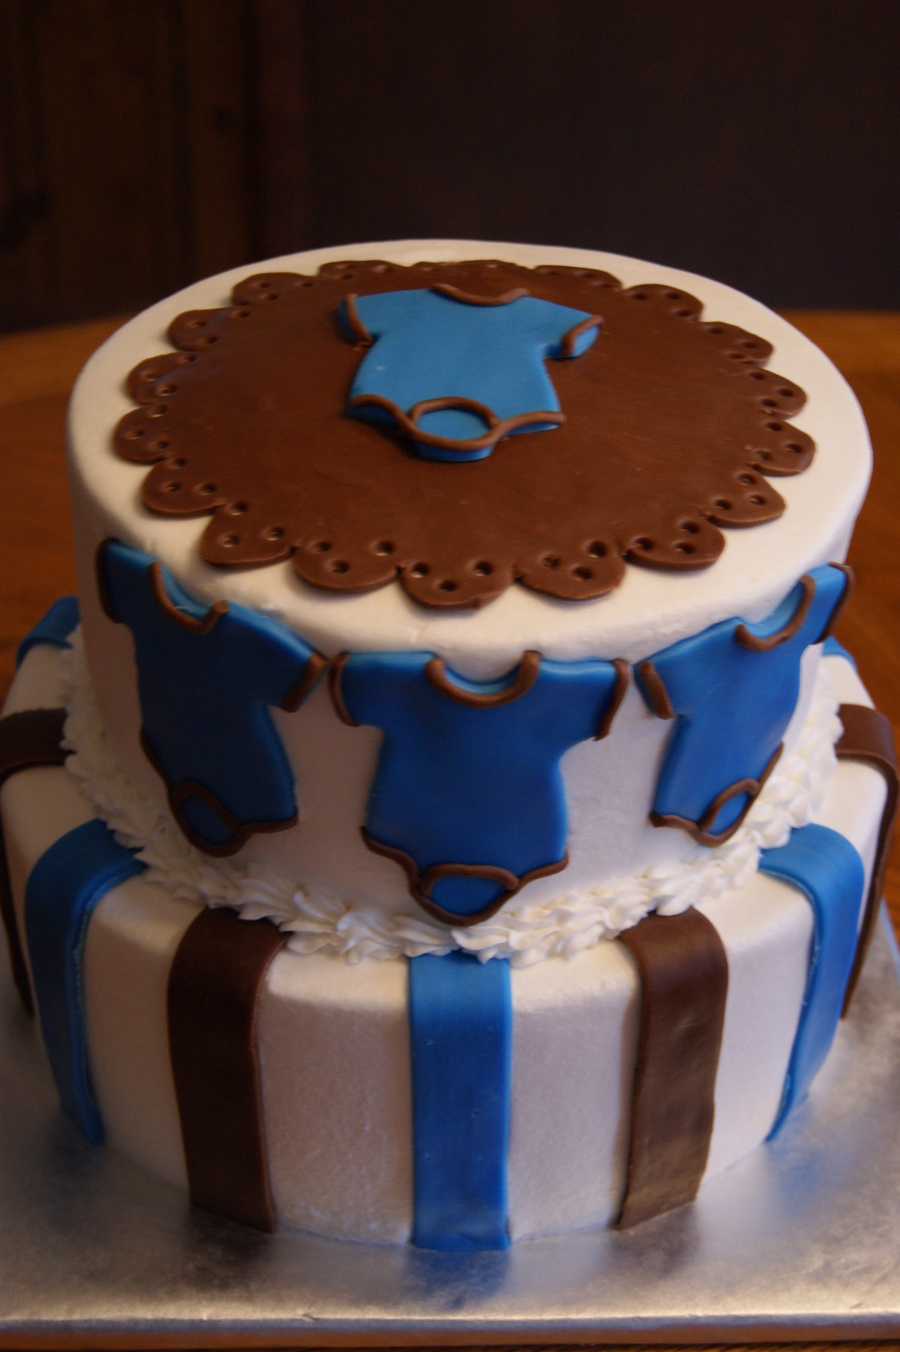 Two Tier 10 Amp 8 Blue And Brown Baby Onesie For A Boy Baby Shower on Cake Central